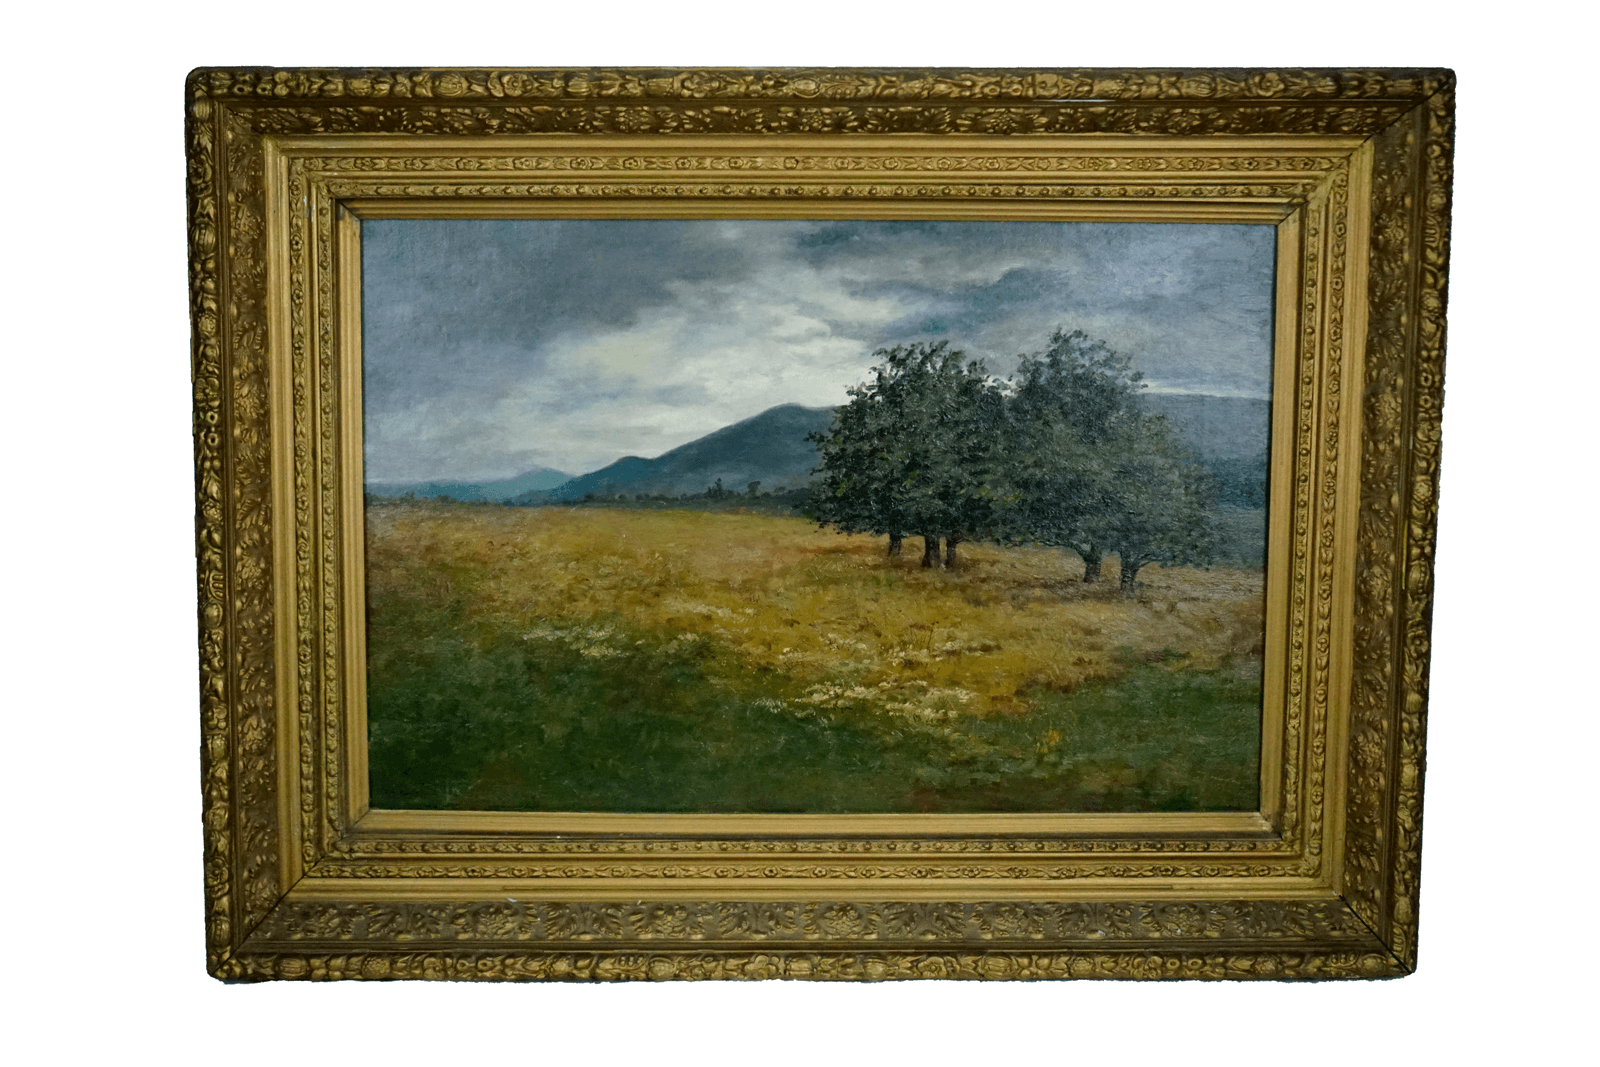 Antique Gilt Frame Landscape Painting Signed Brown 1886